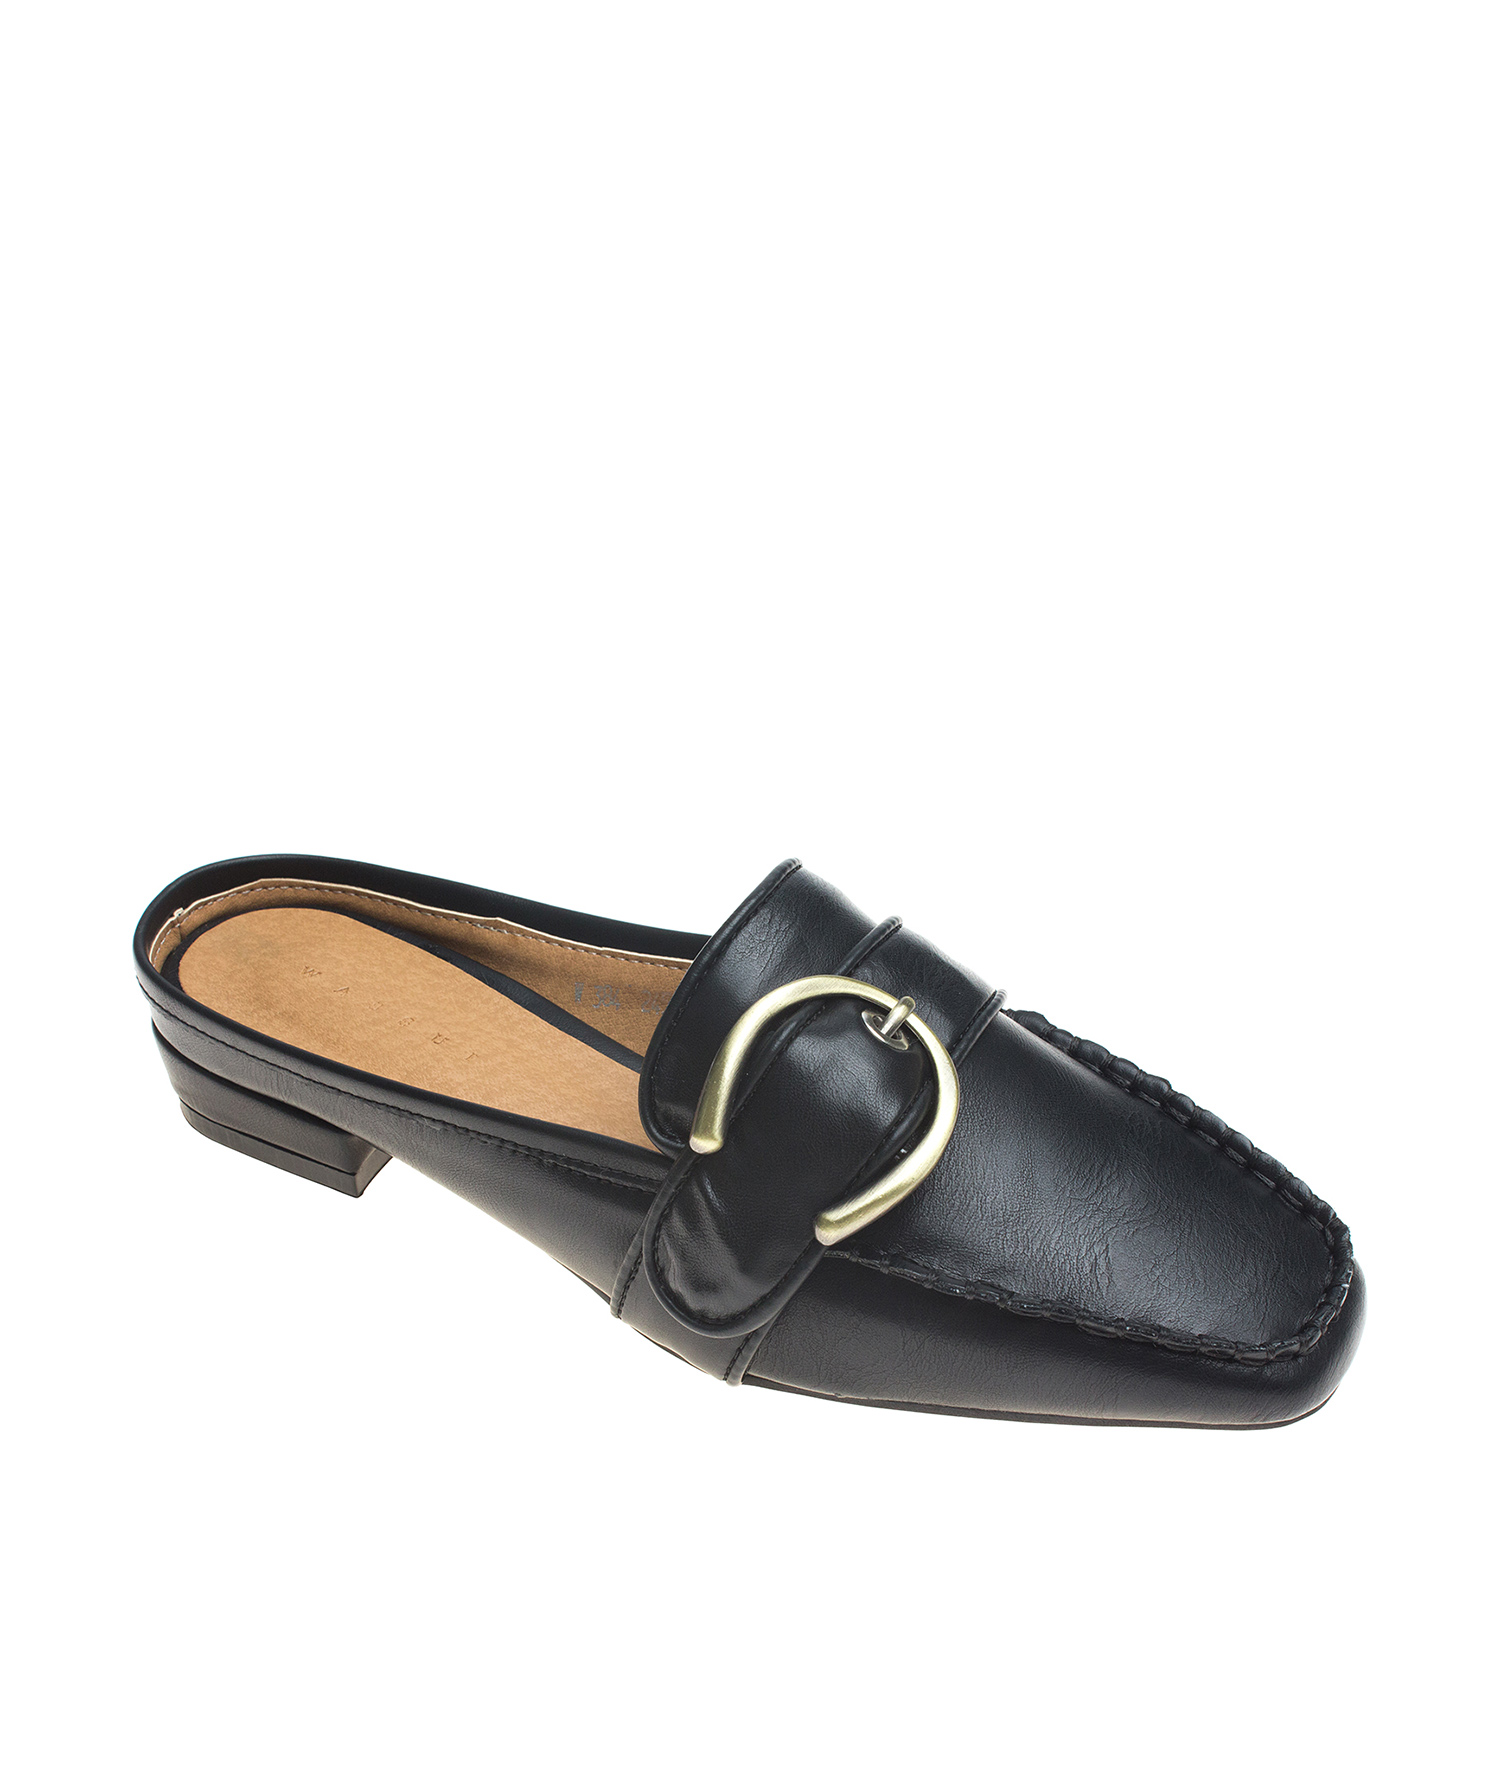 AnnaKastle Womens Buckled Mule Moccasins Black